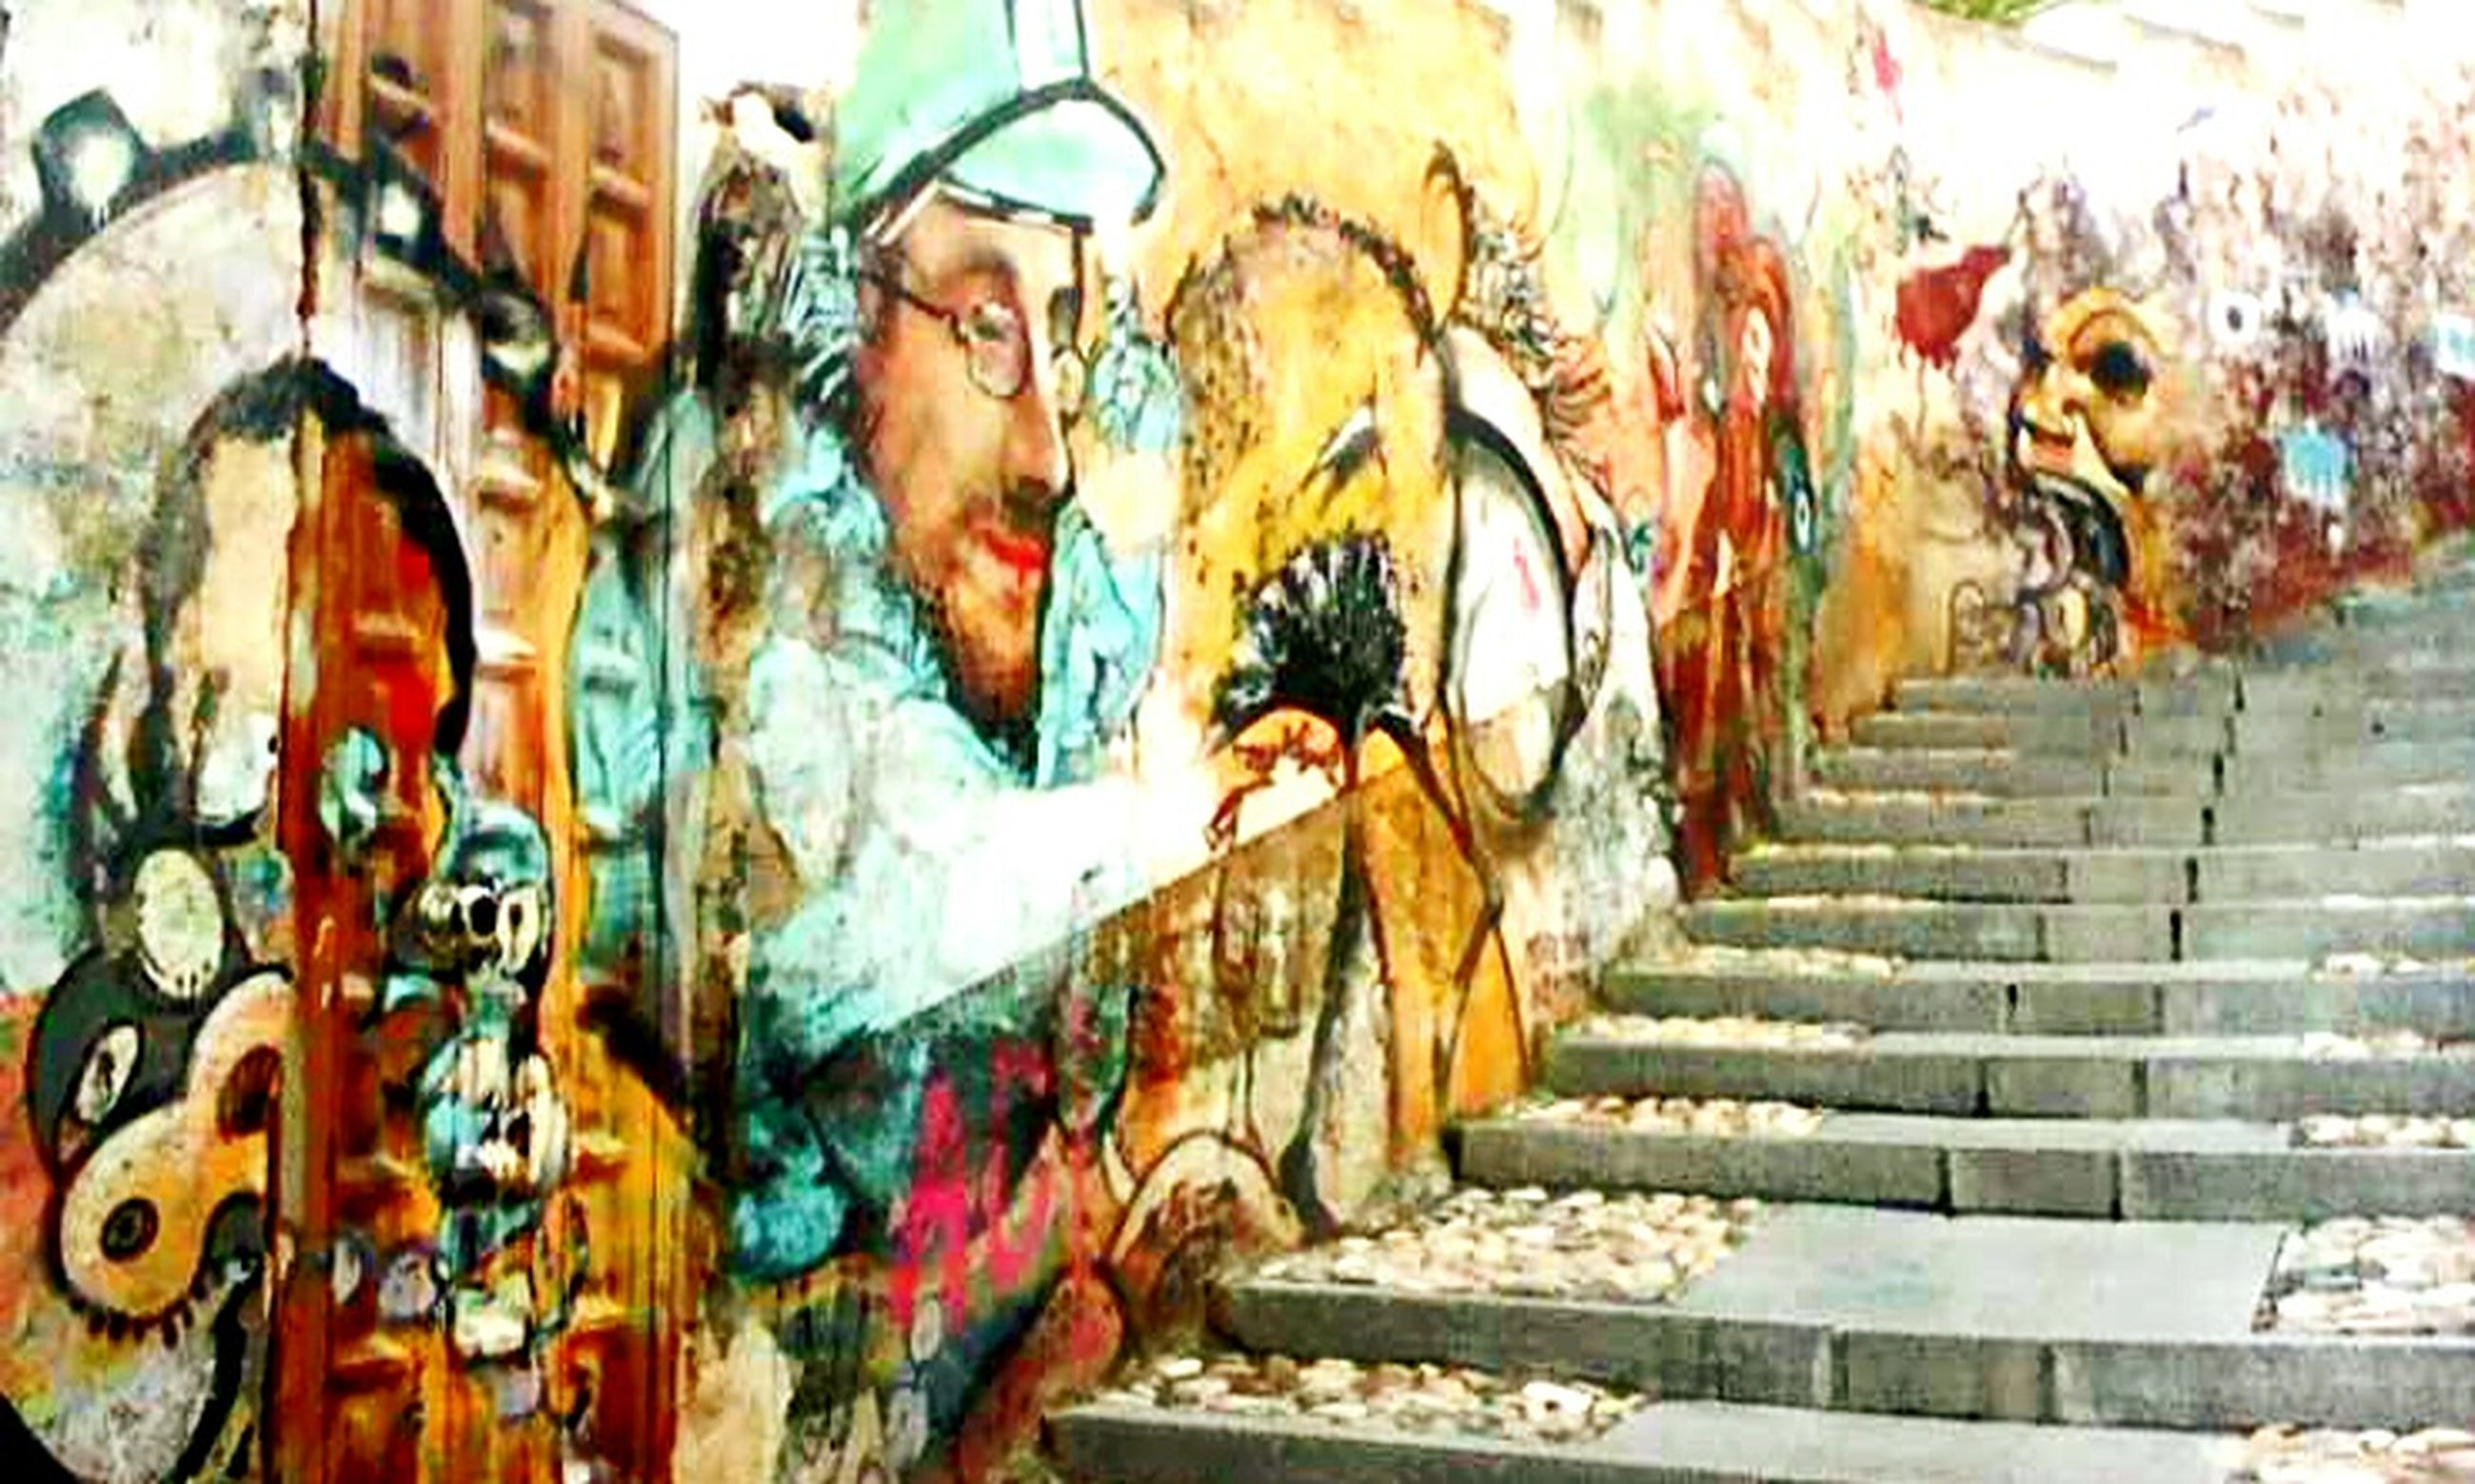 graffiti, art, art and craft, creativity, wall - building feature, multi colored, built structure, architecture, street art, human representation, mural, building exterior, vandalism, wall, pattern, painting, design, day, outdoors